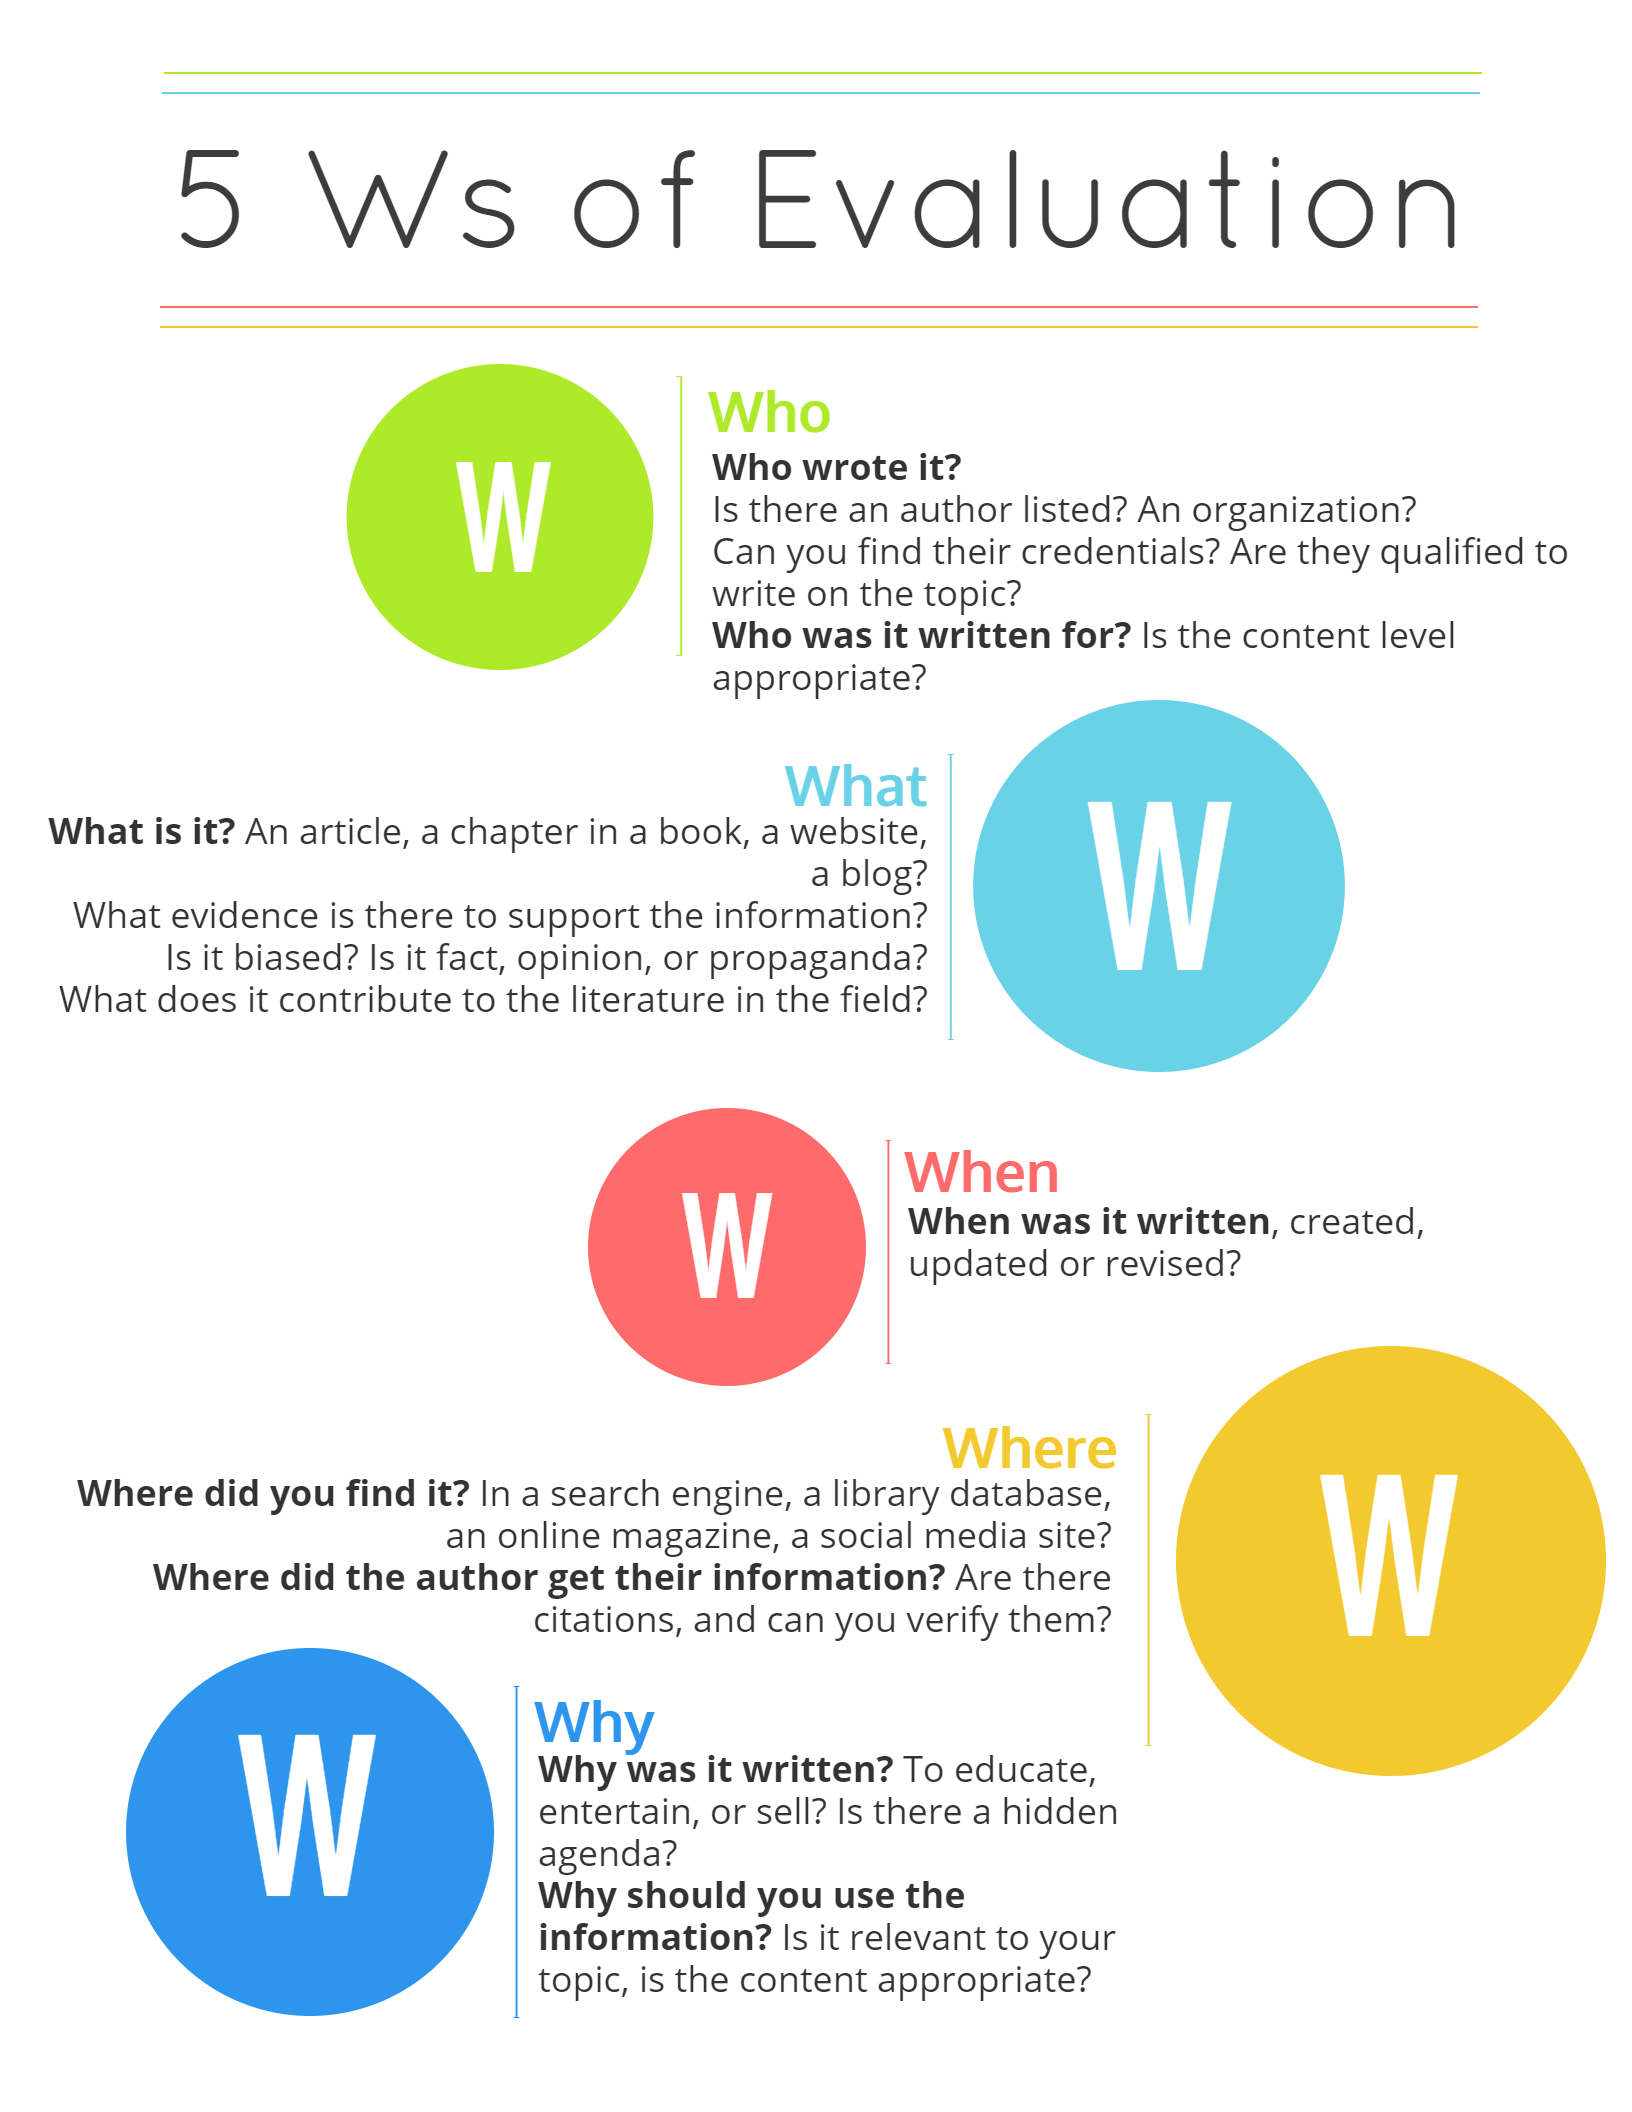 5 Ws of Evaluation: Who wrote it (and what are their credentials)? What kind of information is it? When was it written? Where did the author get their information (are their clear citations or discussion of research methods)? Why was it written and why should you use it?